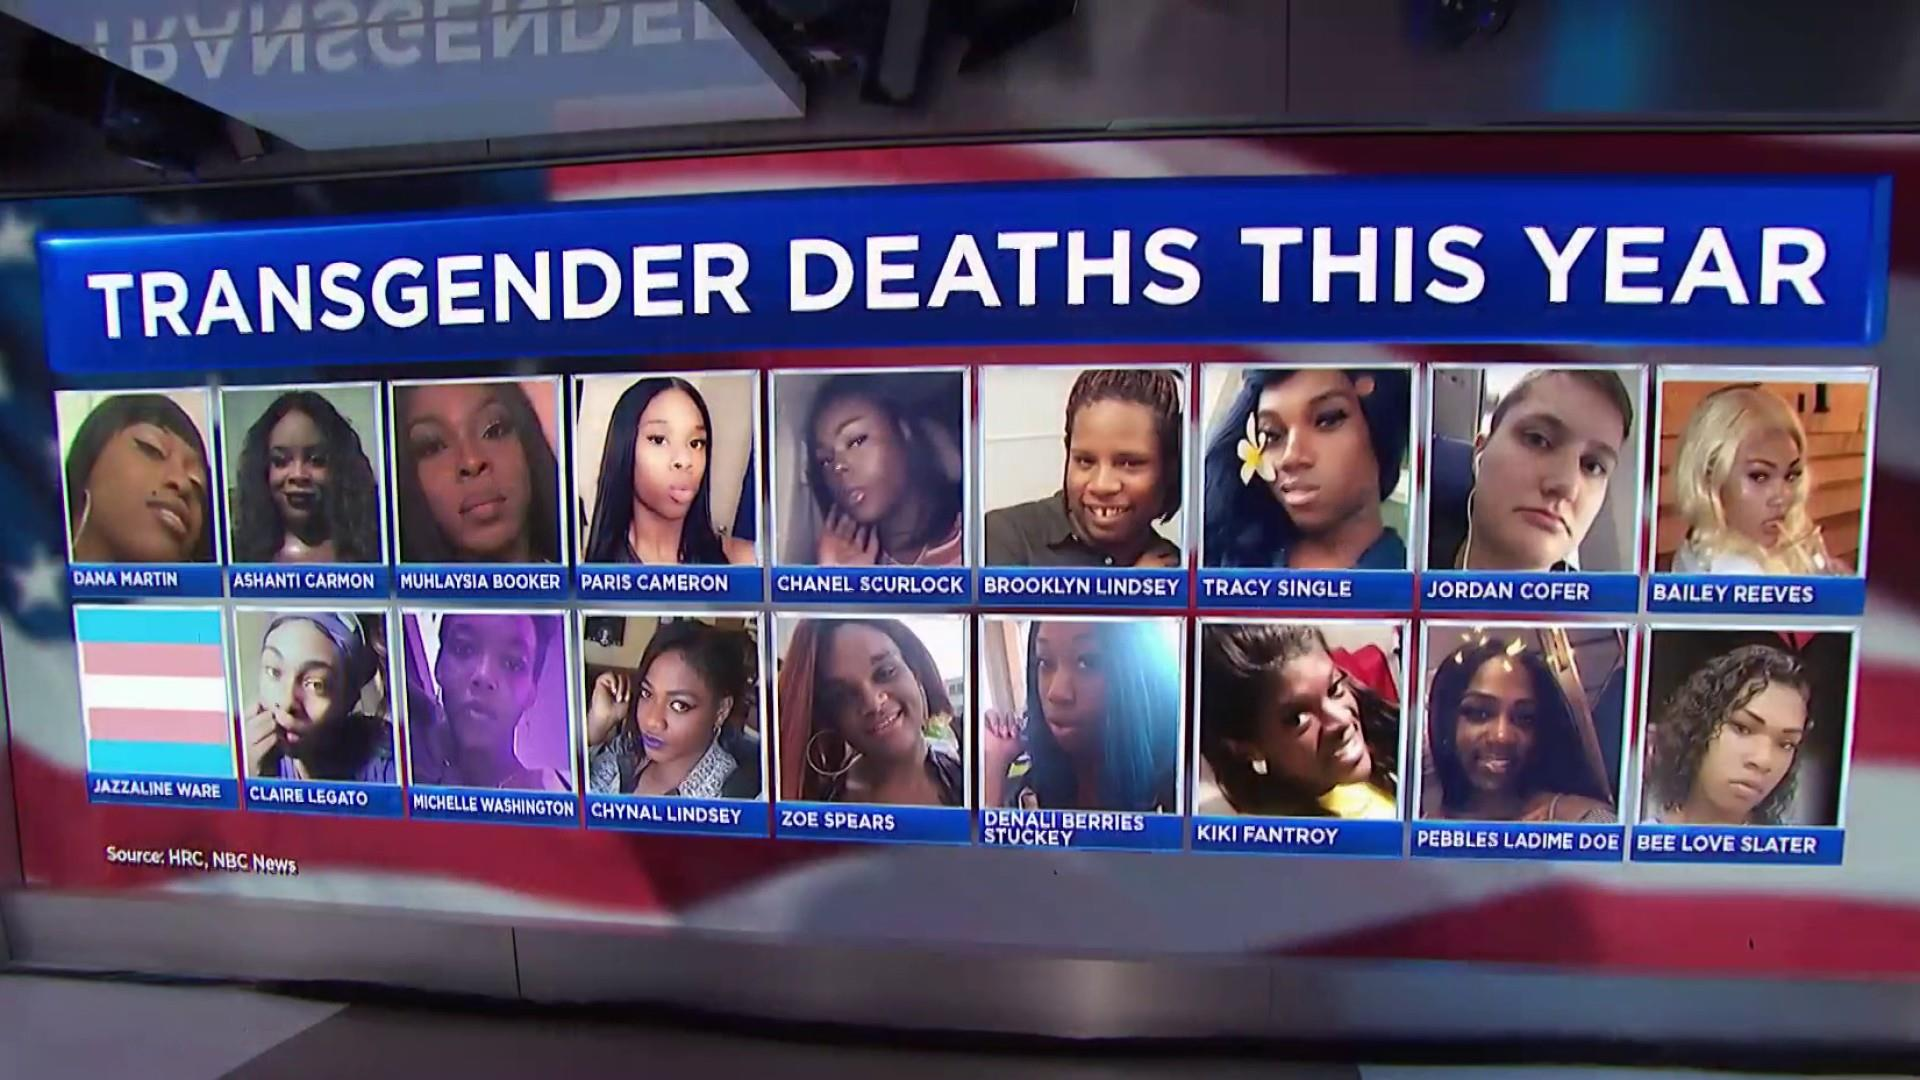 Police investigating U.S.'s 18th transgender killing this year